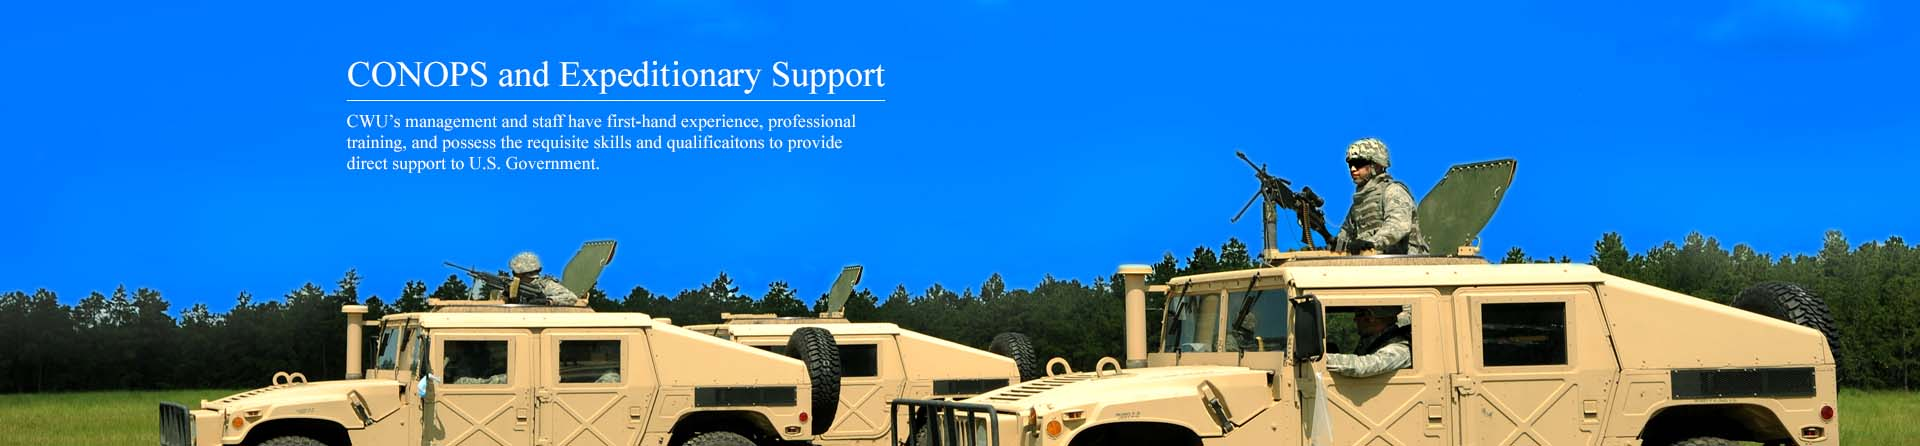 CONOPS and Expeditionary Support